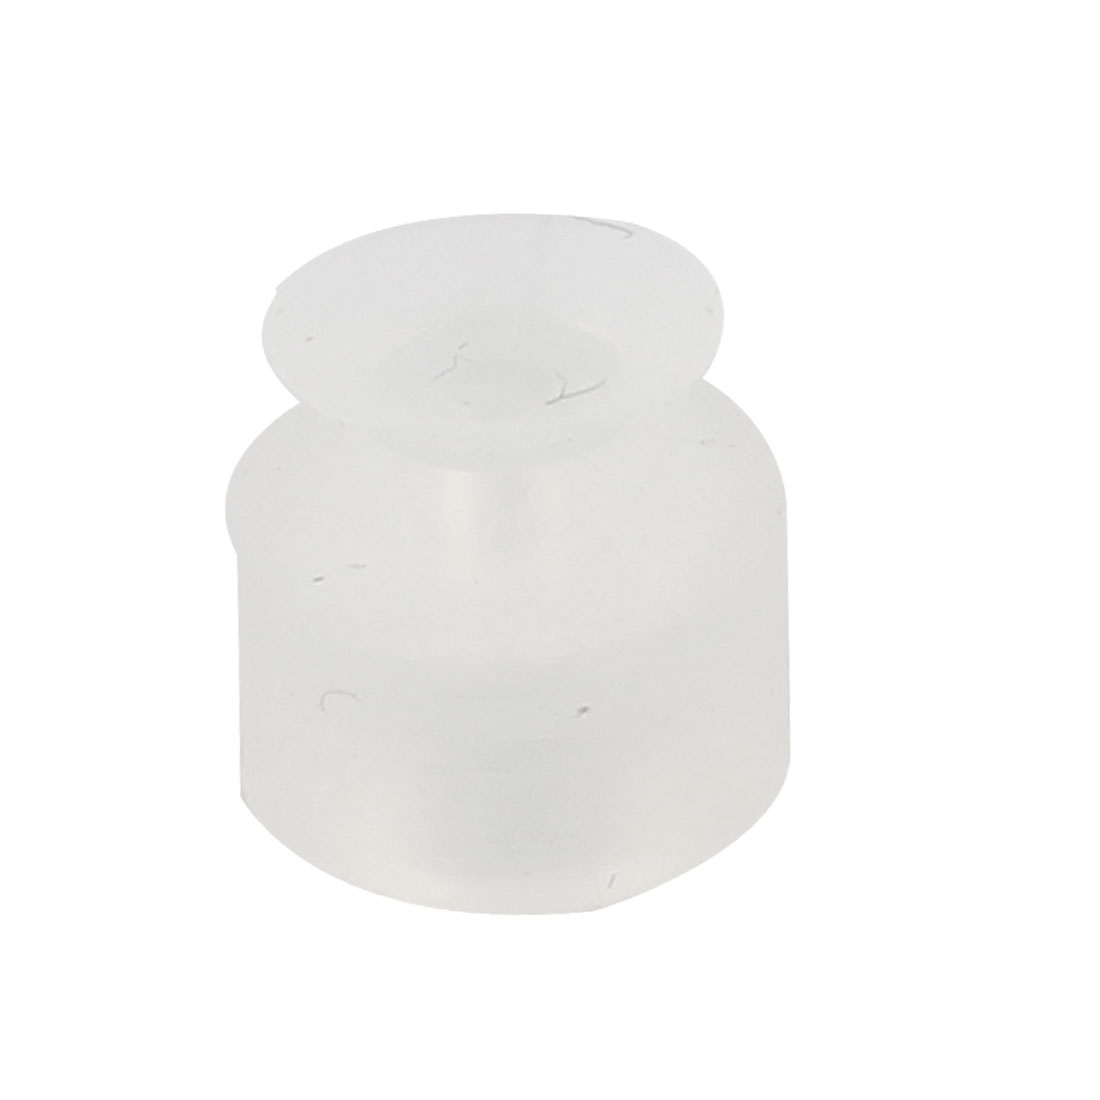 8mm Outside Dia Silicone Oil Resistance Vacuum Suction Cup Sucker Clear White